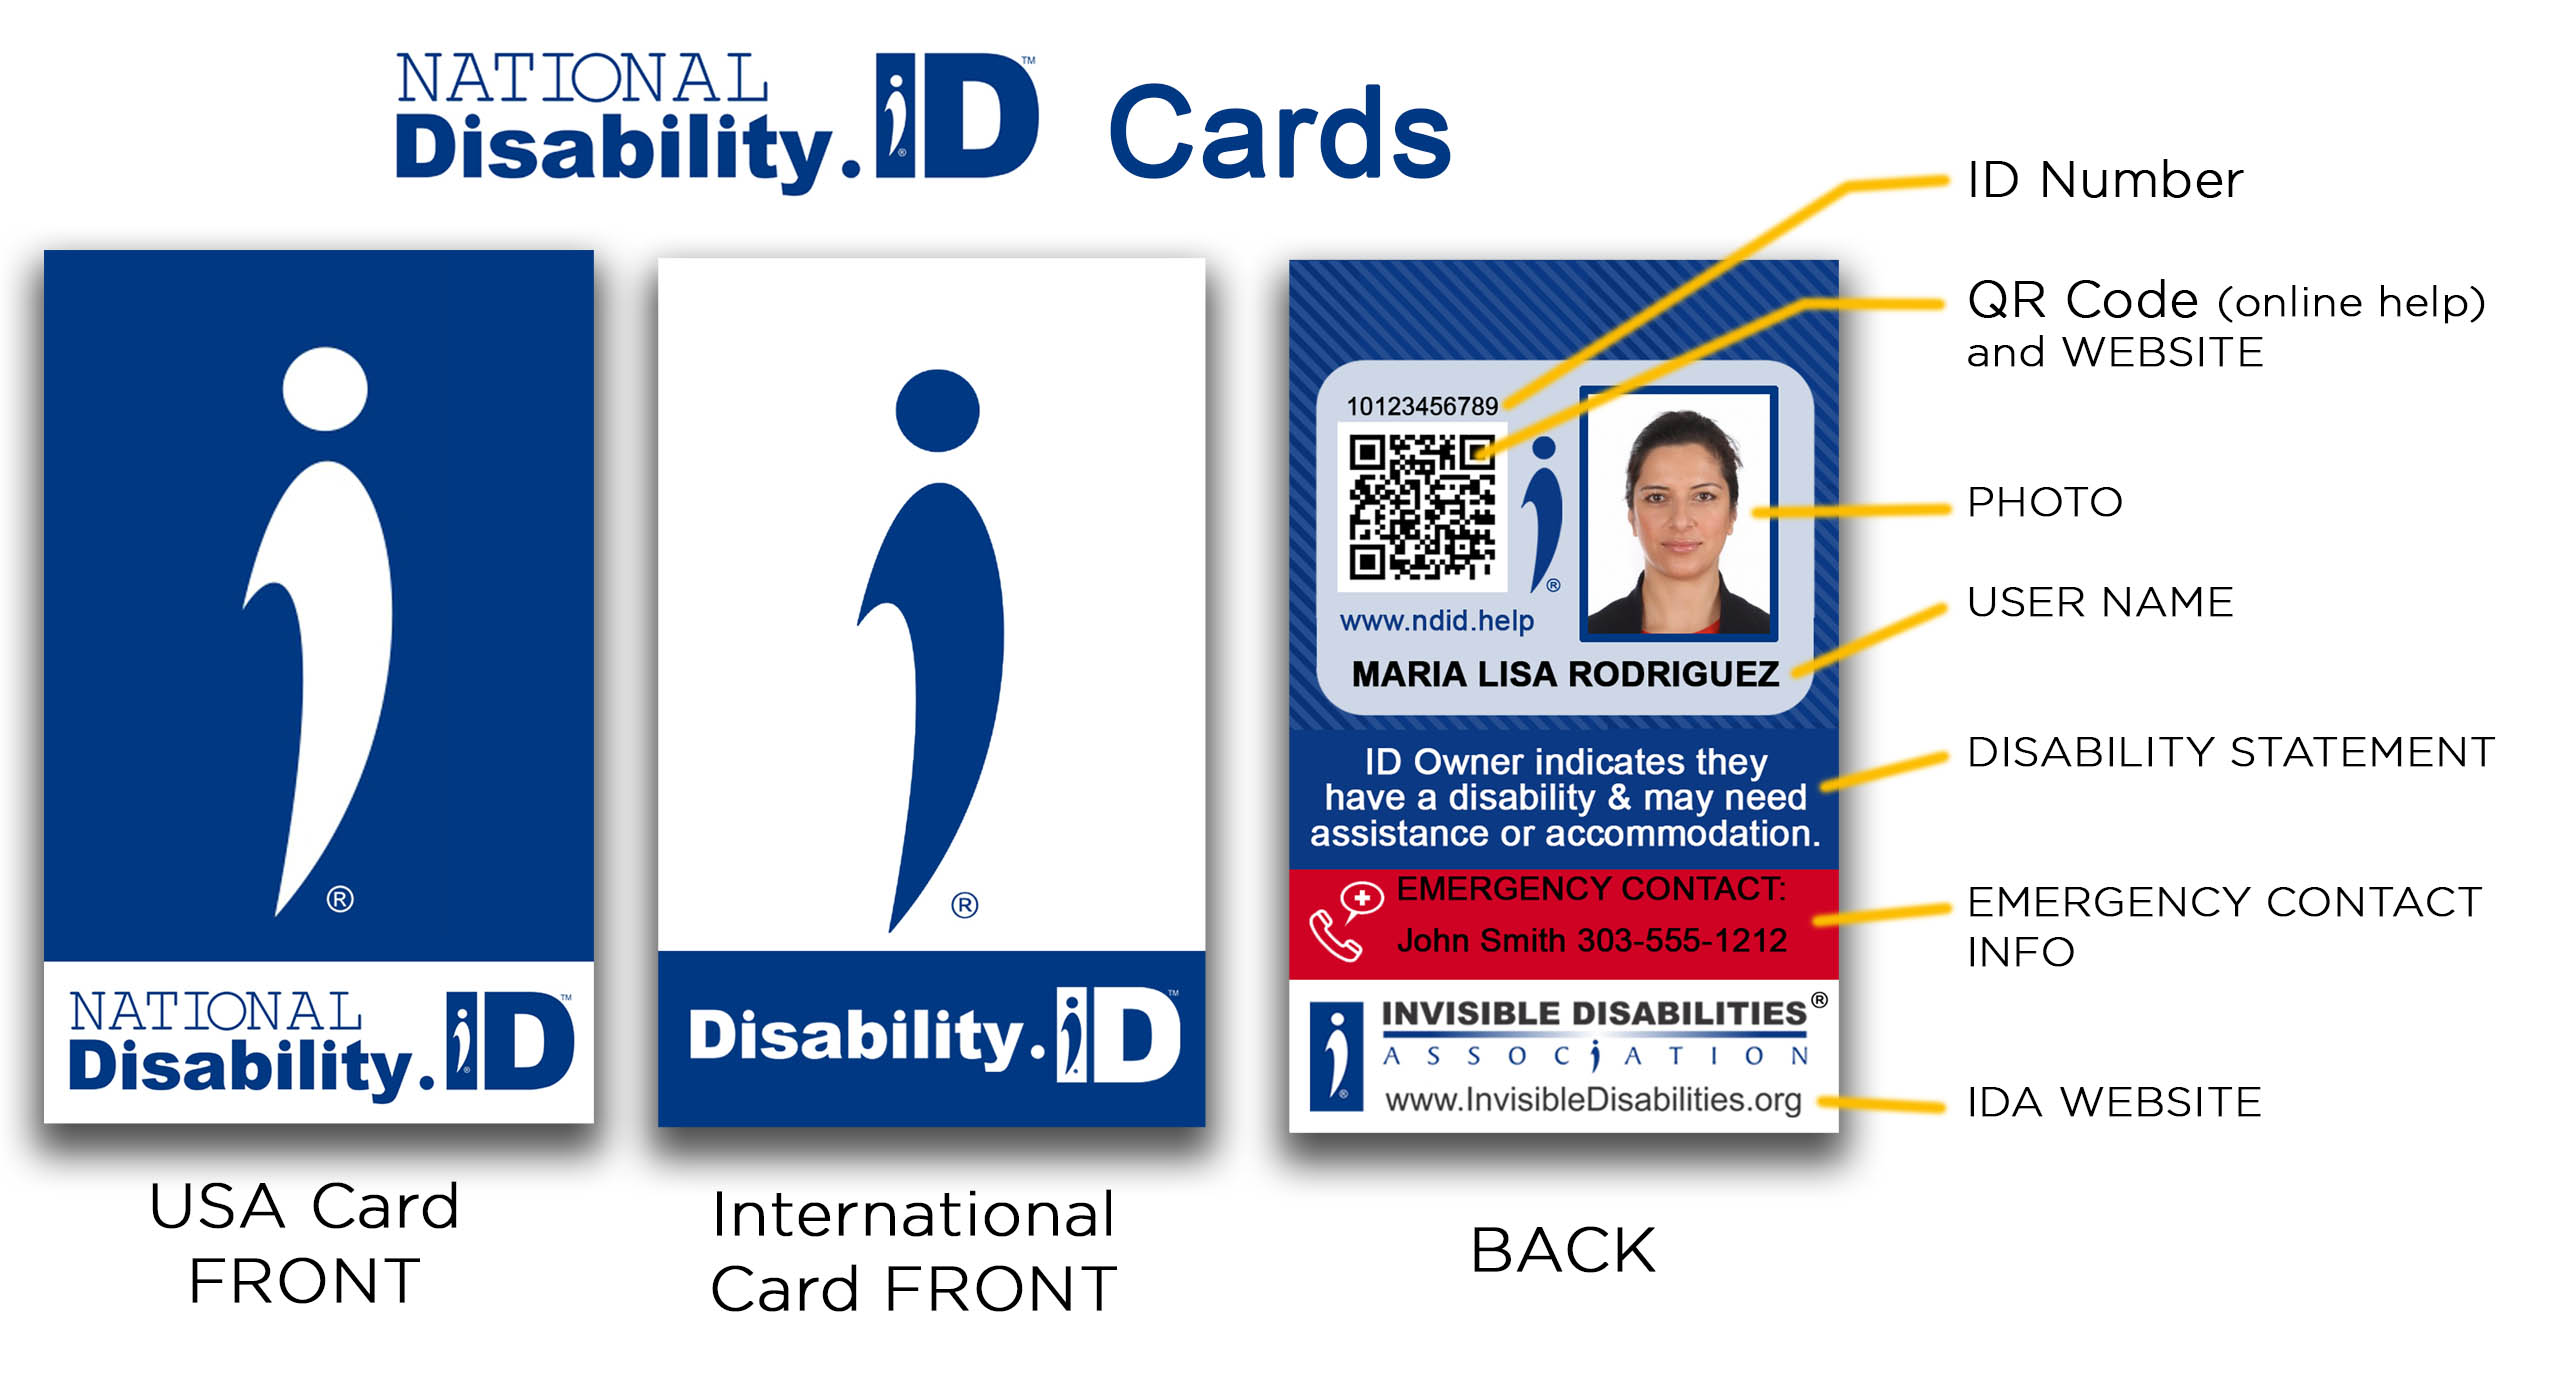 National Disability ID Card - International Disability ID Badge - Invisible Disabilities Association